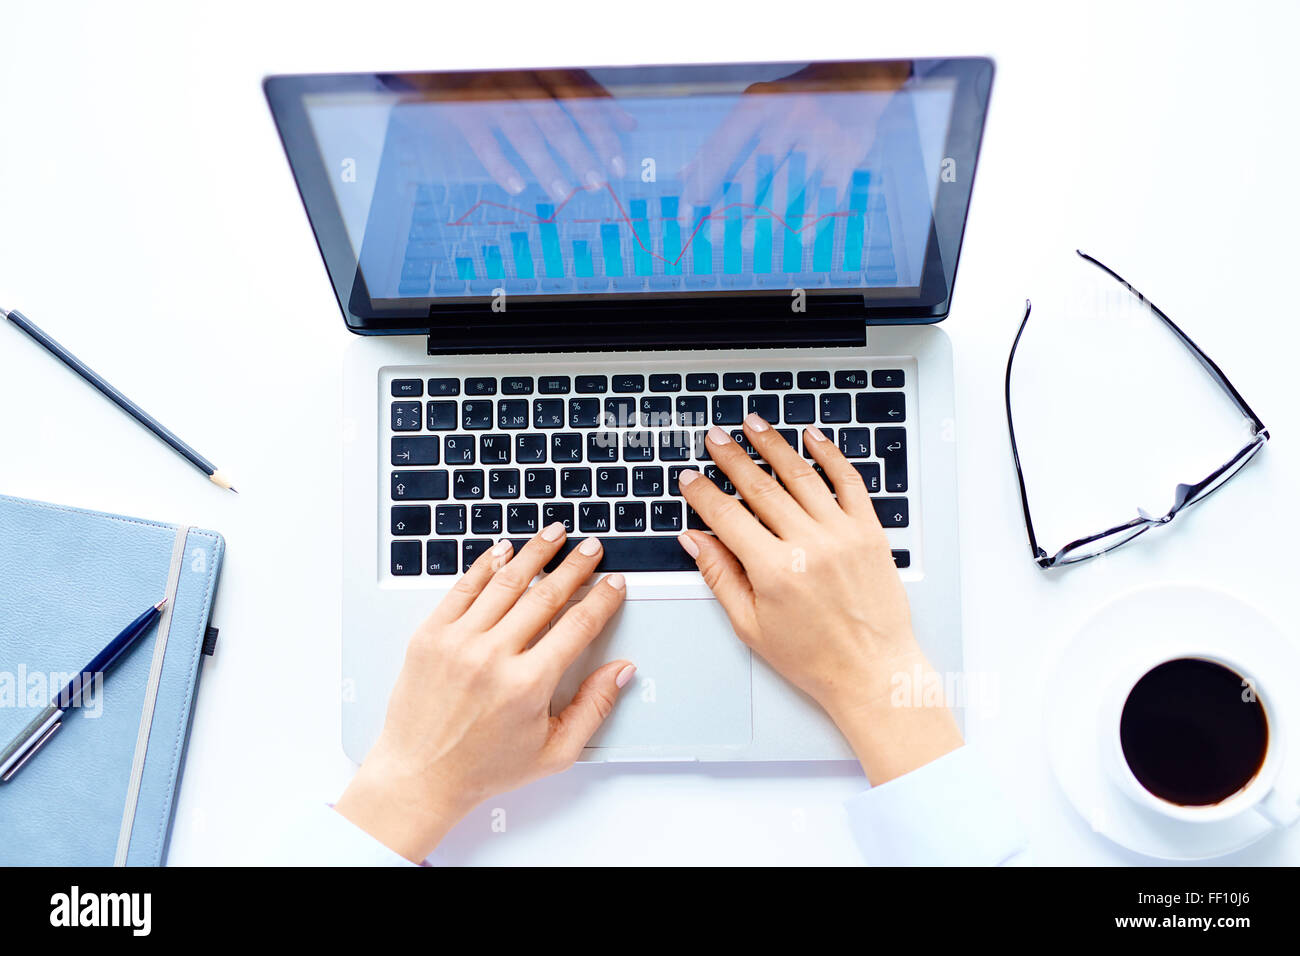 Human hands typing on laptop in business environment - Stock Image